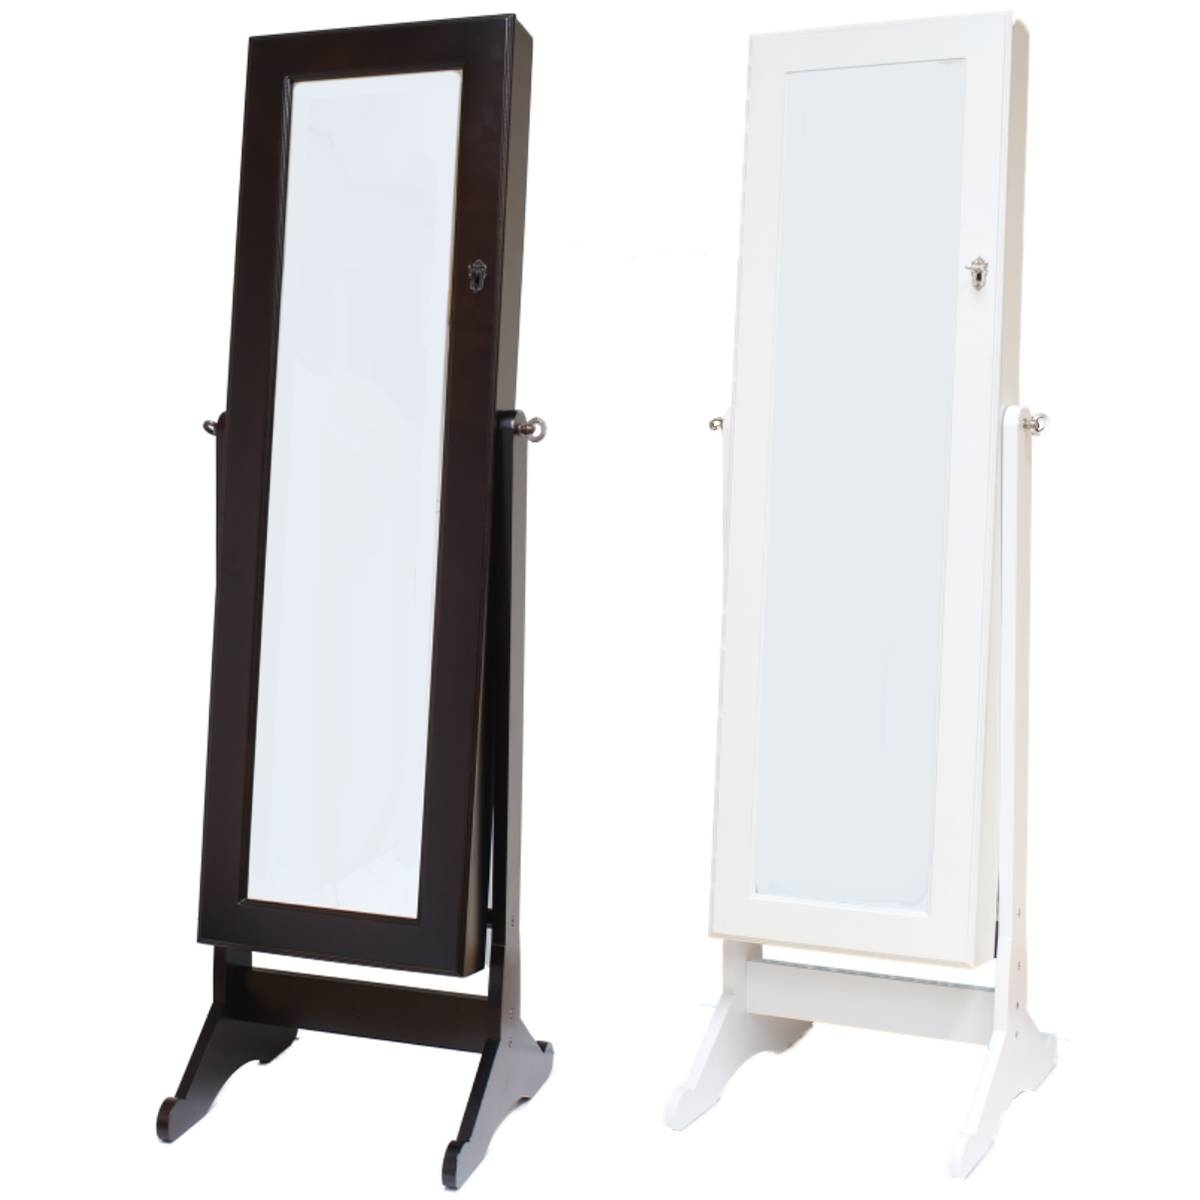 Full Length Floor Mirror Standing 72 Cute Interior And Sentinel Intended For Black Floor Standing Mirrors (View 12 of 15)